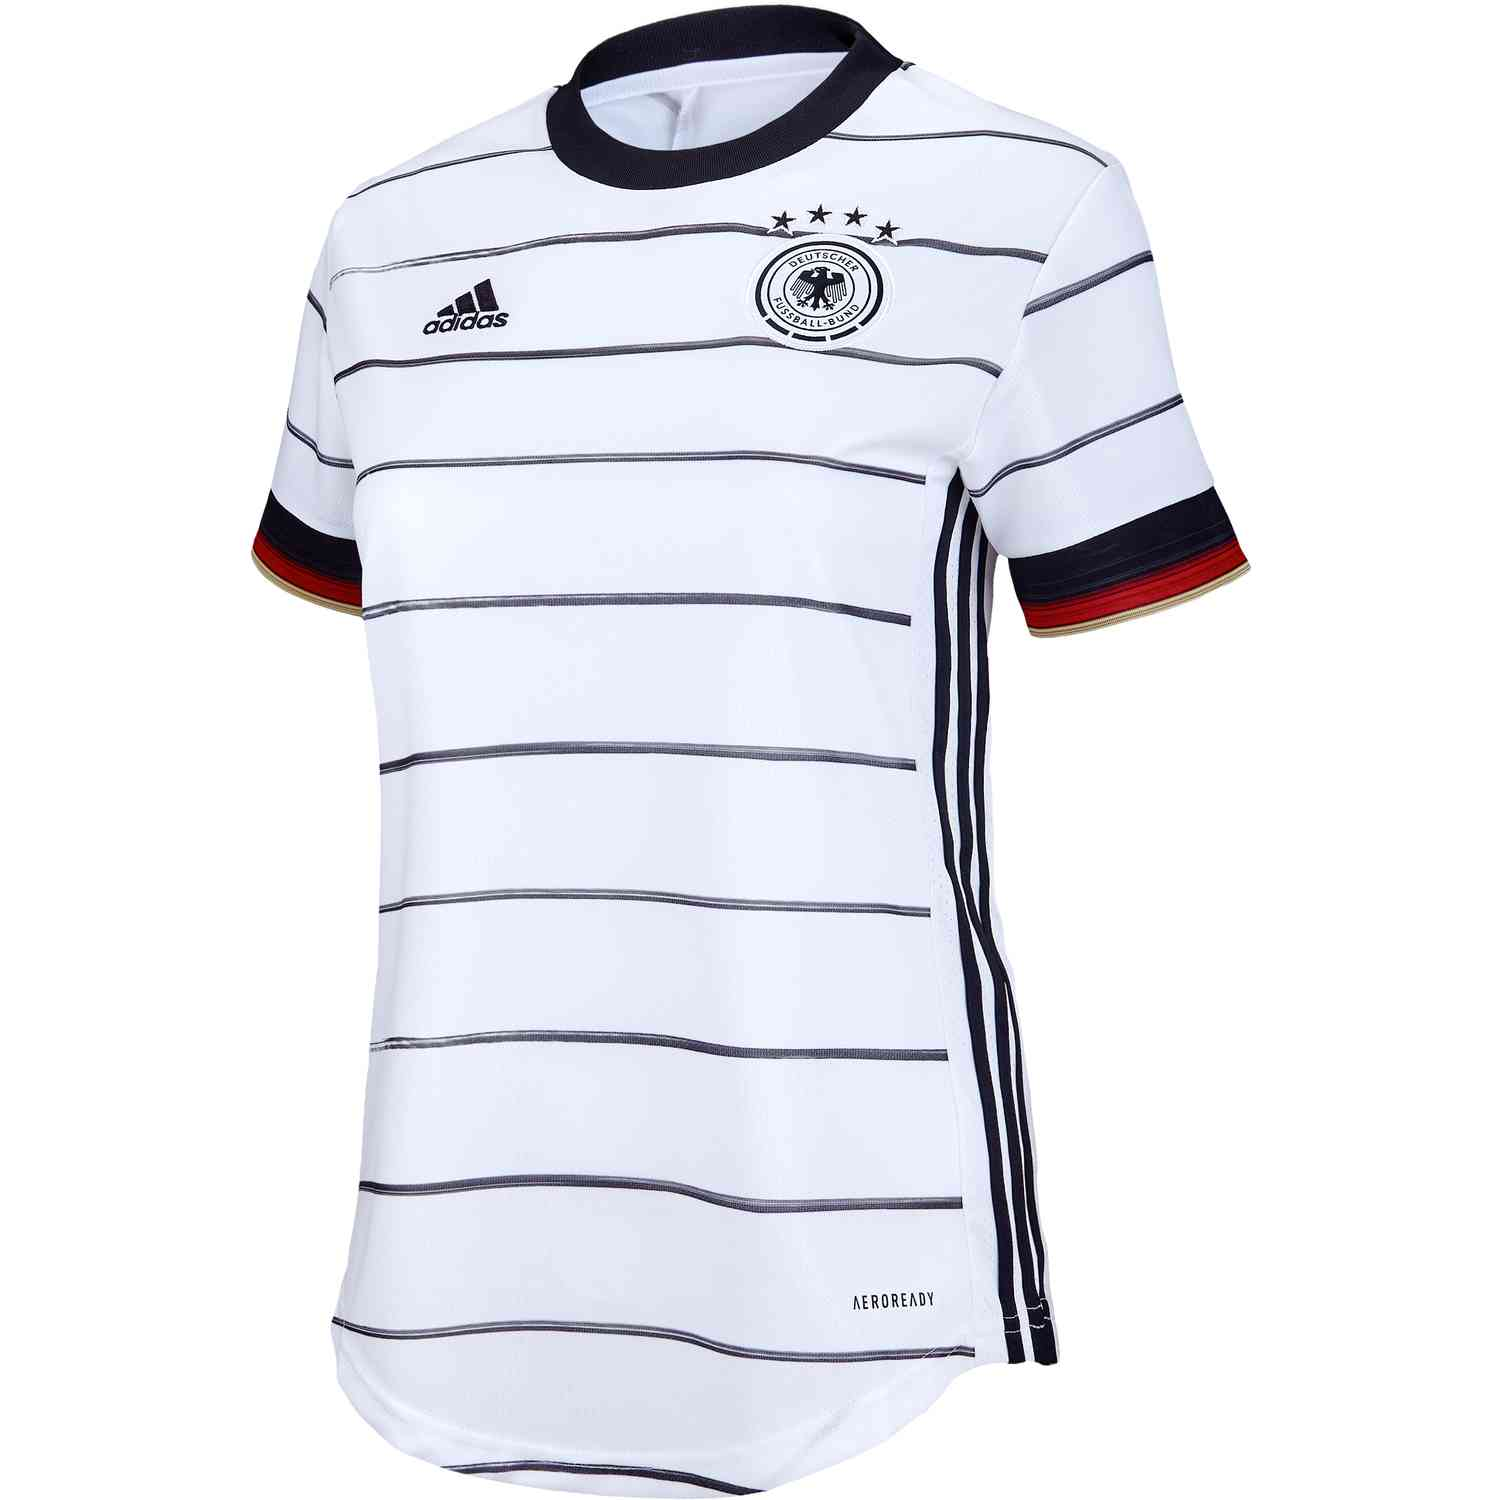 2020 Women's adidas Germany Home Jersey